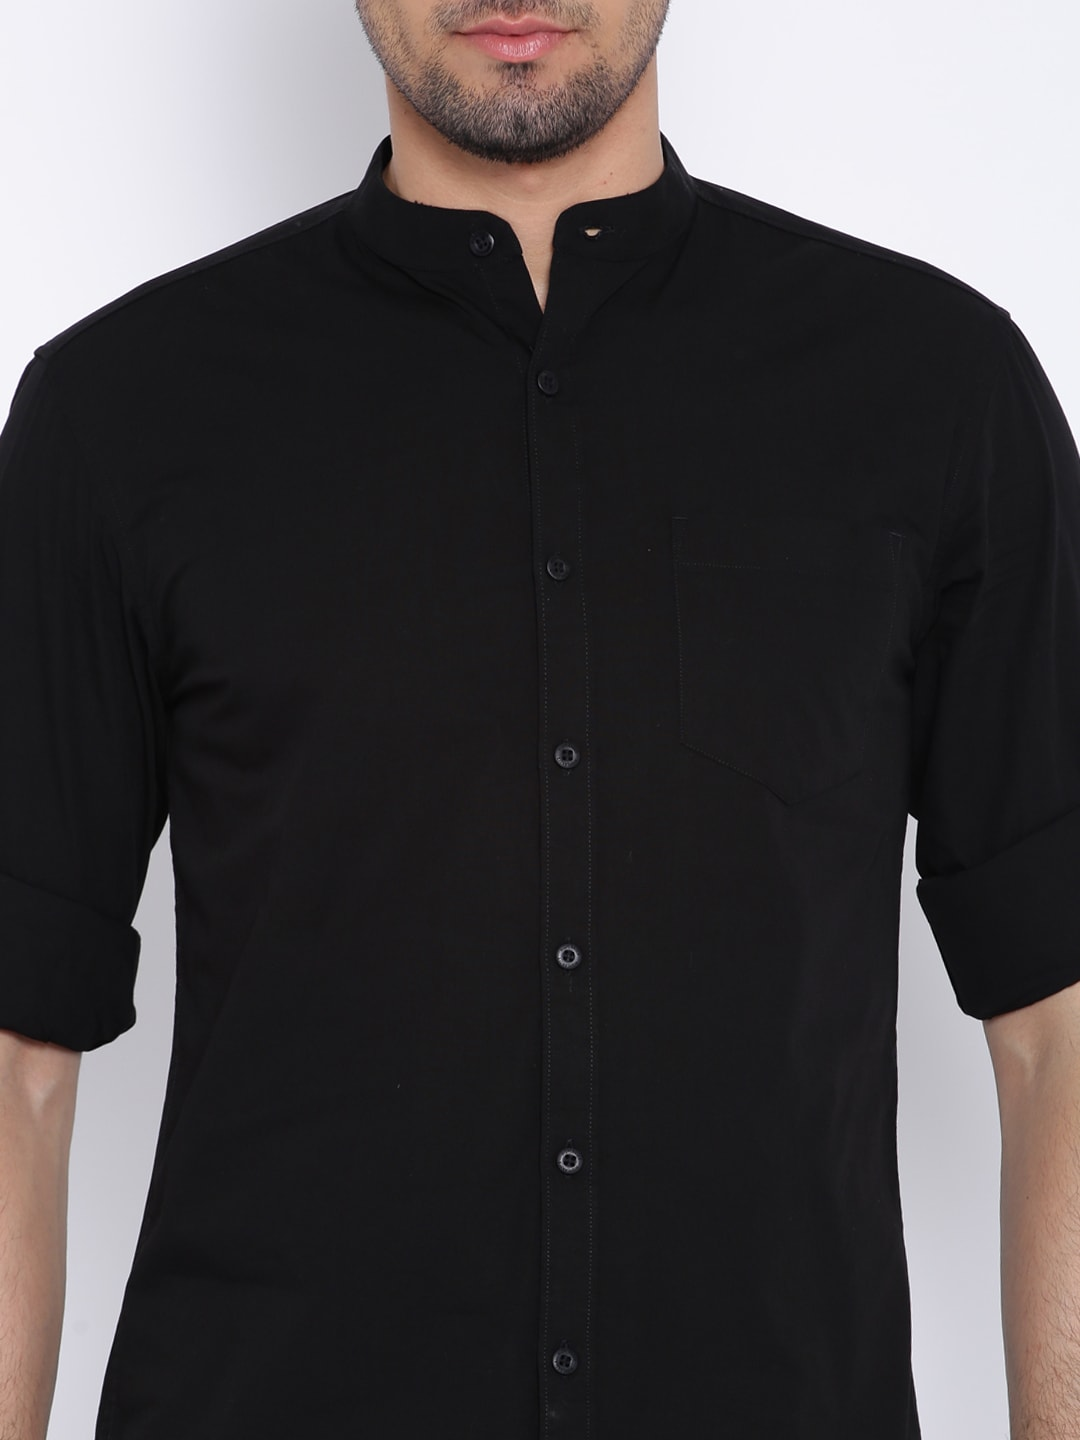 Shirts for Men - Buy Stylish Mens Shirt Online in India | Myntra